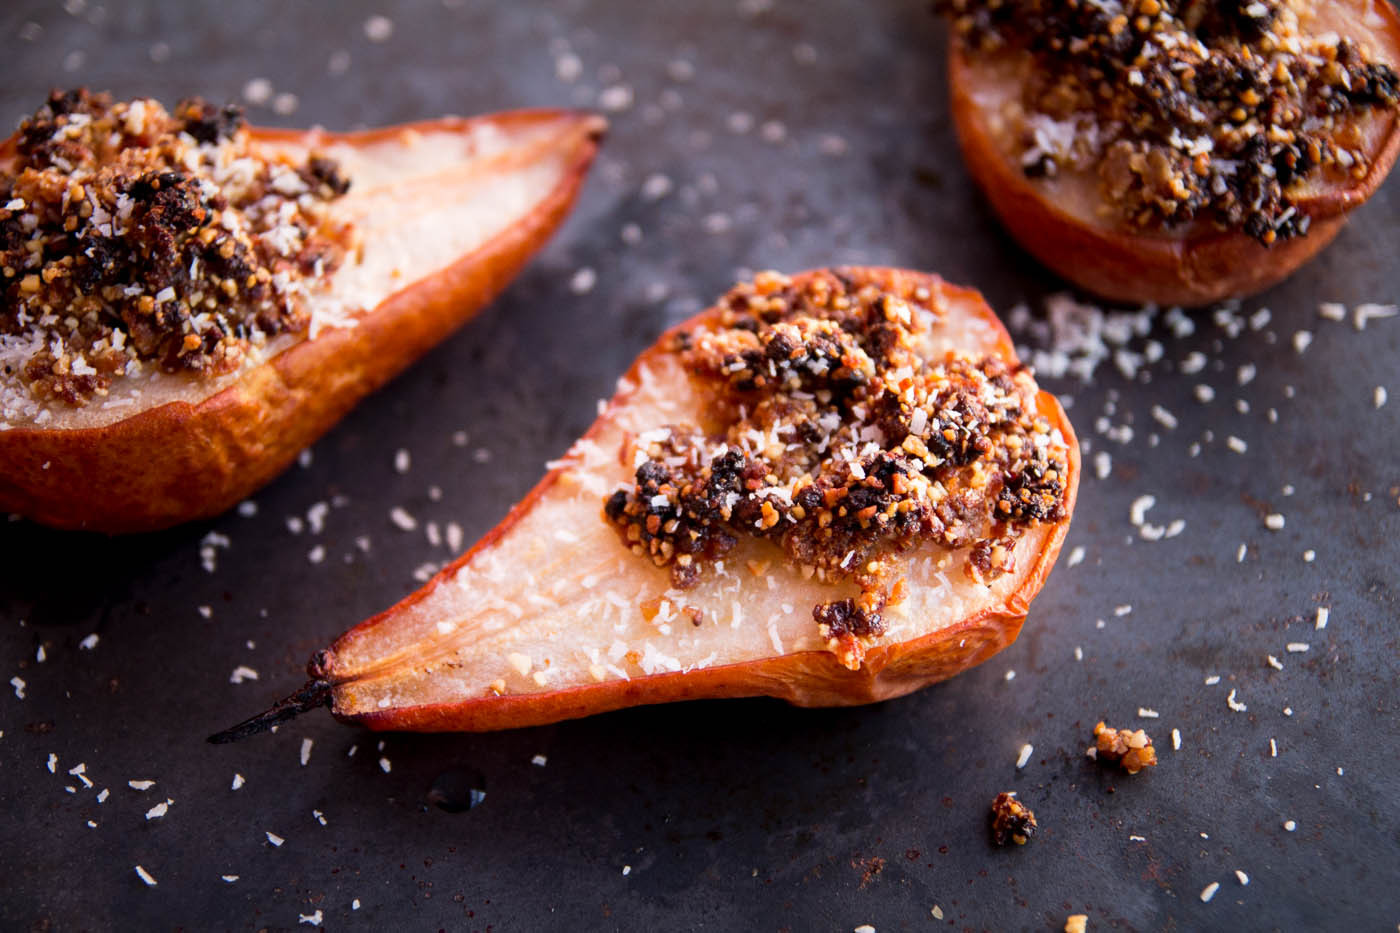 Baked Pear Desserts  Baked Pears A Healthy Dessert Indiaphile